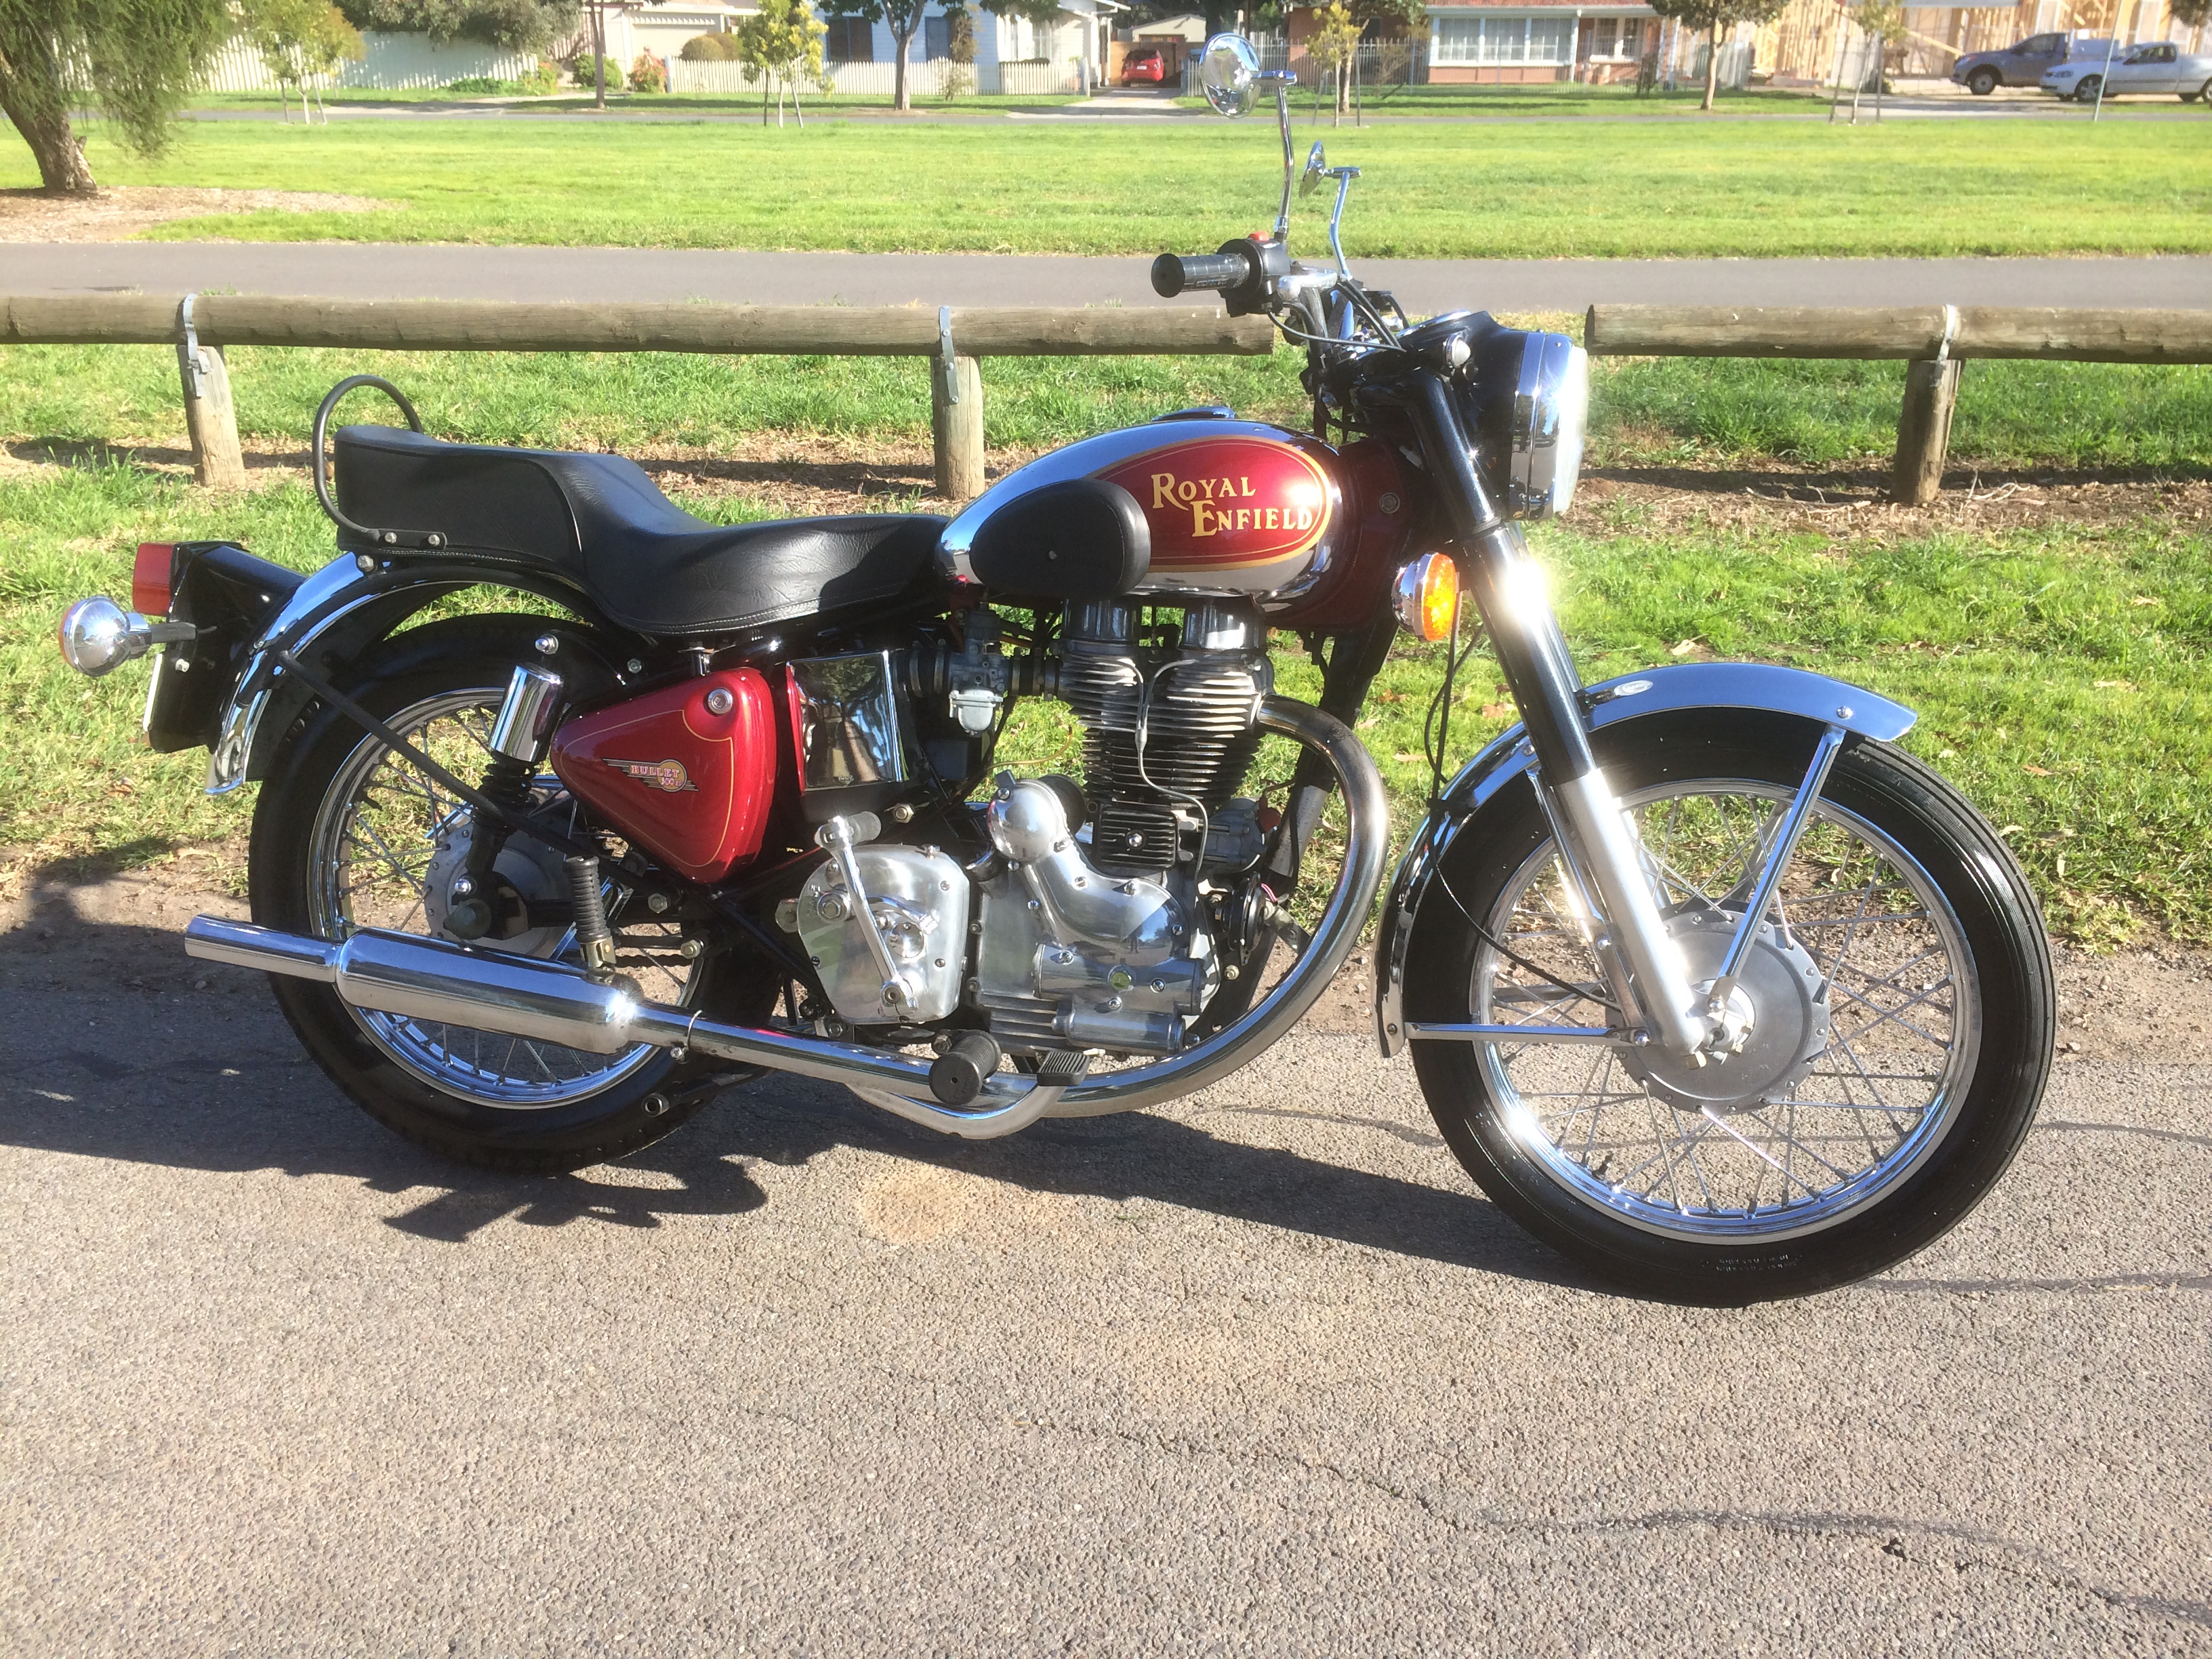 Royal Enfield Bullet 500 Army 2001 images #126024